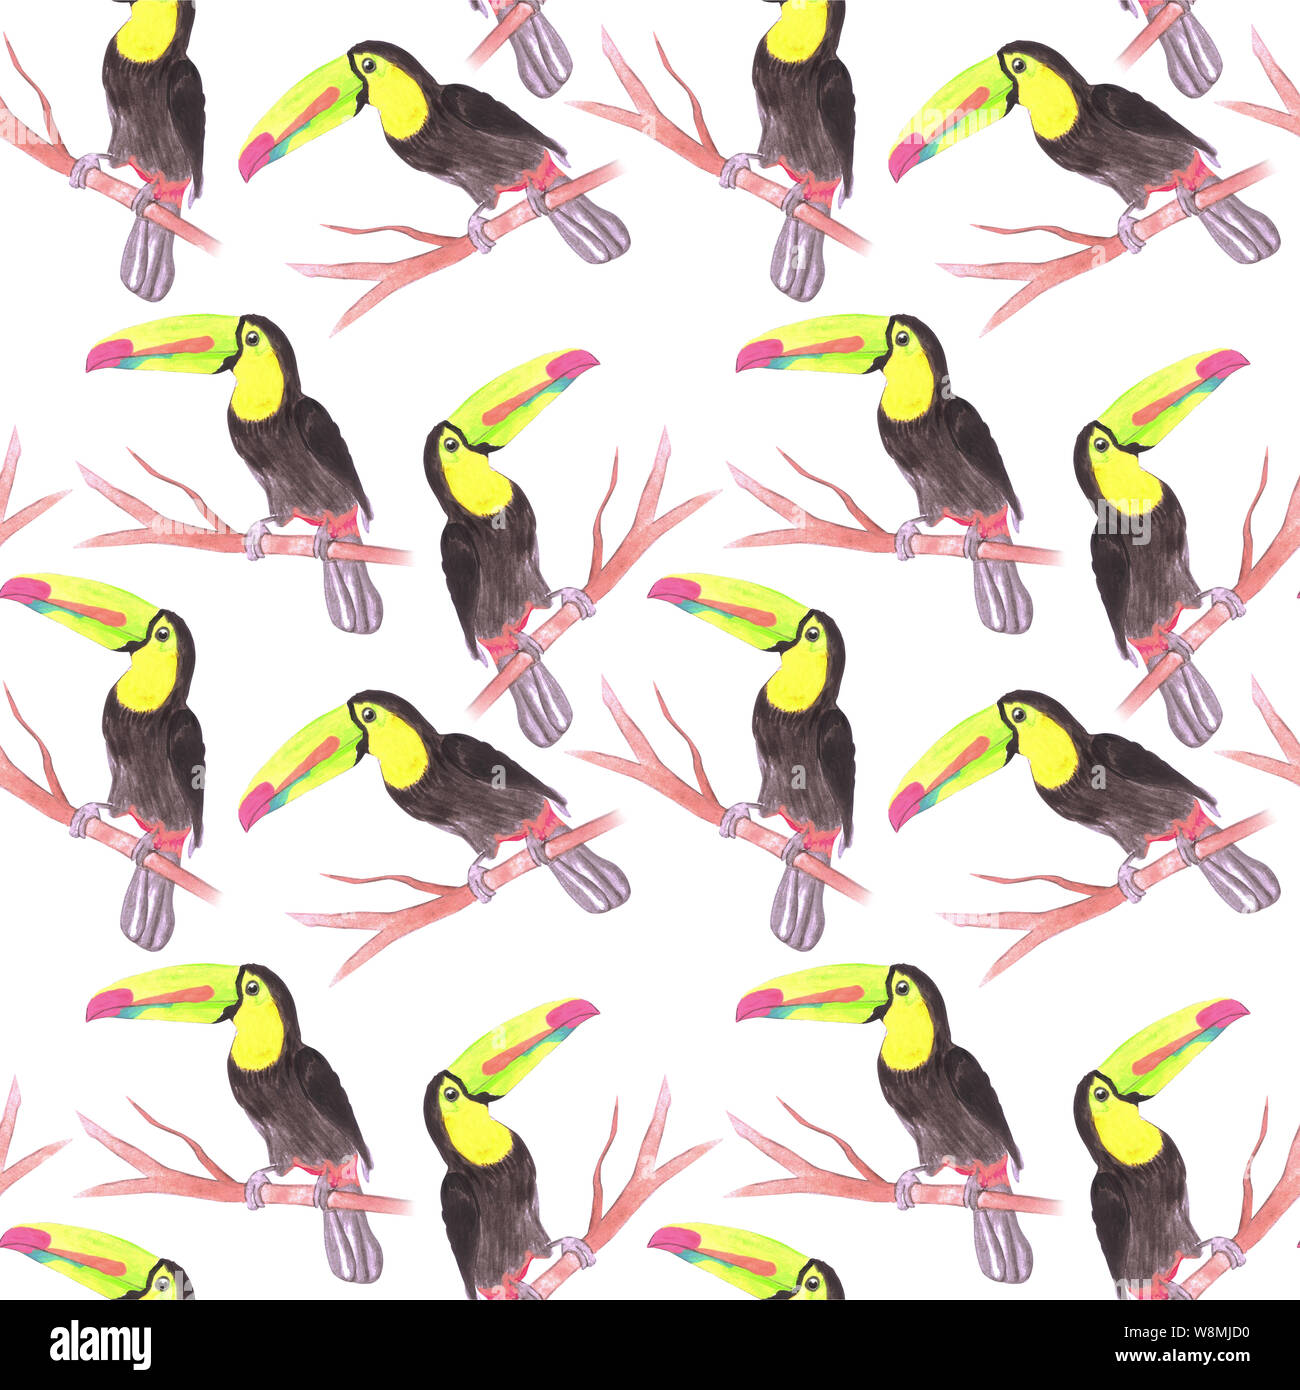 Keel billed Toucan or Ramphastidae sulfuratus bird seamless watercolor birds painting background Stock Photo